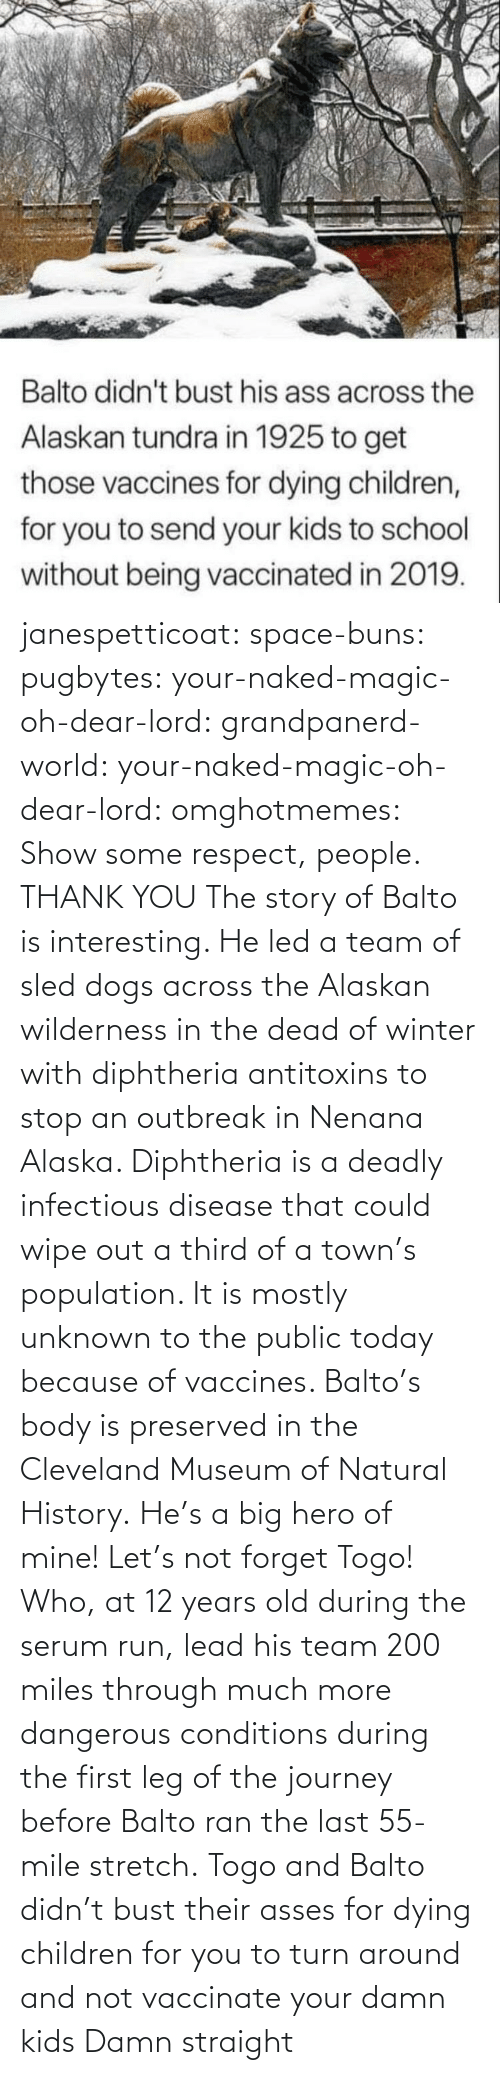 a team: janespetticoat: space-buns:  pugbytes:   your-naked-magic-oh-dear-lord:  grandpanerd-world:   your-naked-magic-oh-dear-lord:  omghotmemes: Show some respect, people.  THANK YOU   The story of Balto is interesting. He led a team of sled dogs across the Alaskan wilderness in the dead of winter with diphtheria antitoxins to stop an outbreak in Nenana Alaska. Diphtheria is a deadly infectious disease that could wipe out a third of a town's population. It is mostly unknown to the public today because of vaccines. Balto's body is preserved in the Cleveland Museum of Natural History.   He's a big hero of mine!   Let's not forget Togo! Who, at 12 years old during the serum run, lead his team 200 miles through much more dangerous conditions during the first leg of the journey before Balto ran the last 55-mile stretch.   Togo and Balto didn't bust their asses for dying children for you to turn around and not vaccinate your damn kids    Damn straight